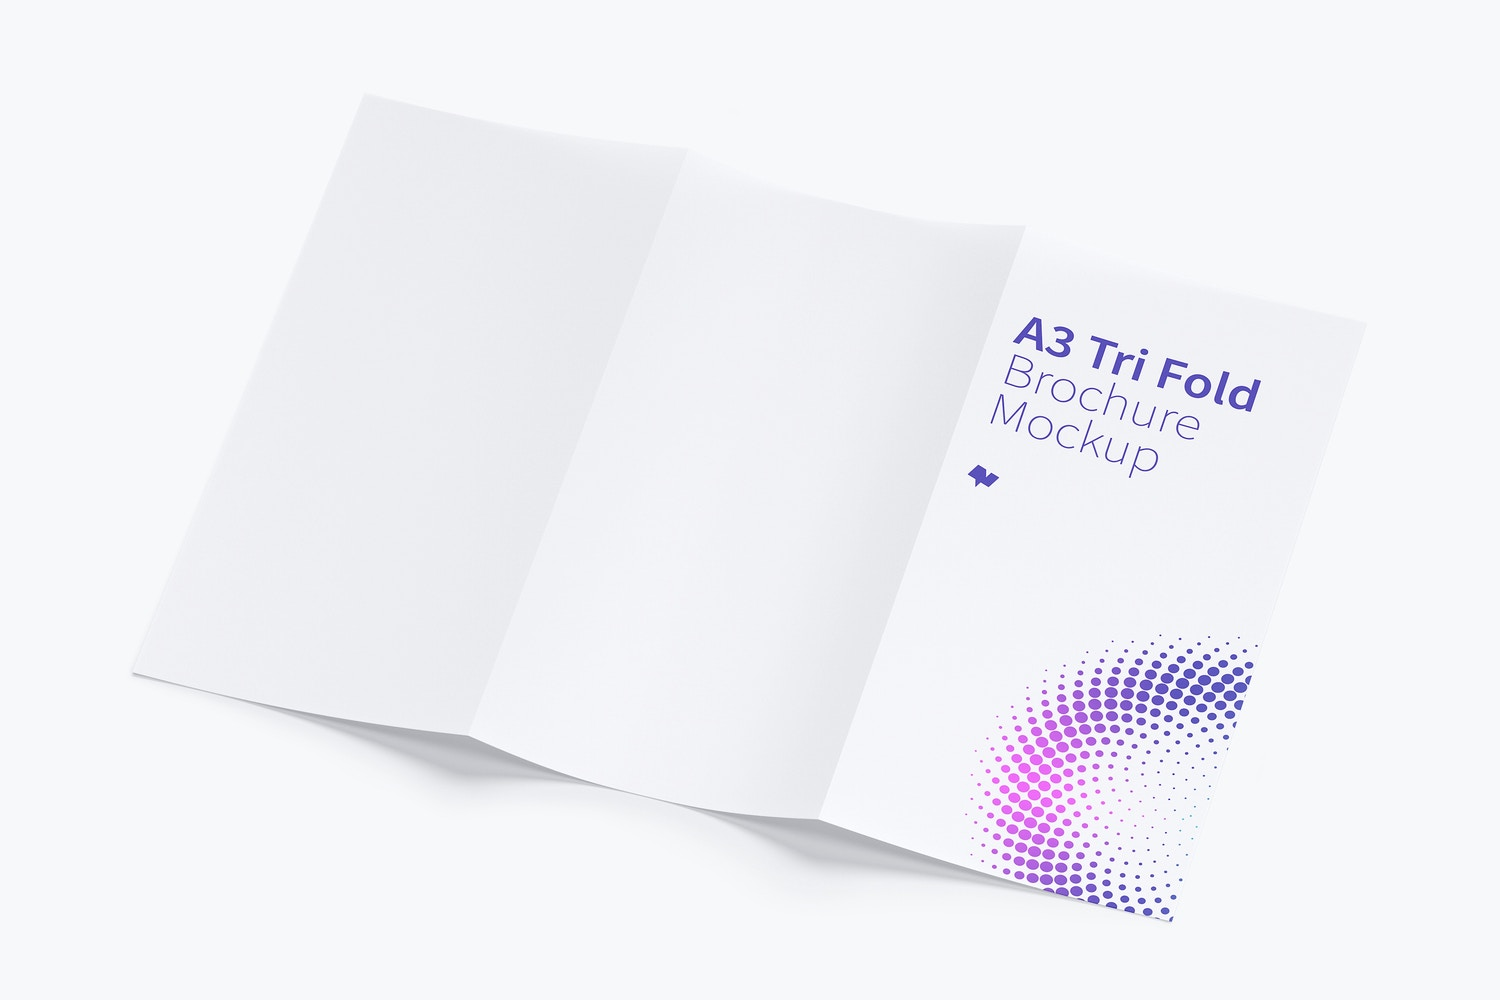 A3 Trifold Brochure Mockup 02 by Original Mockups on Original Mockups